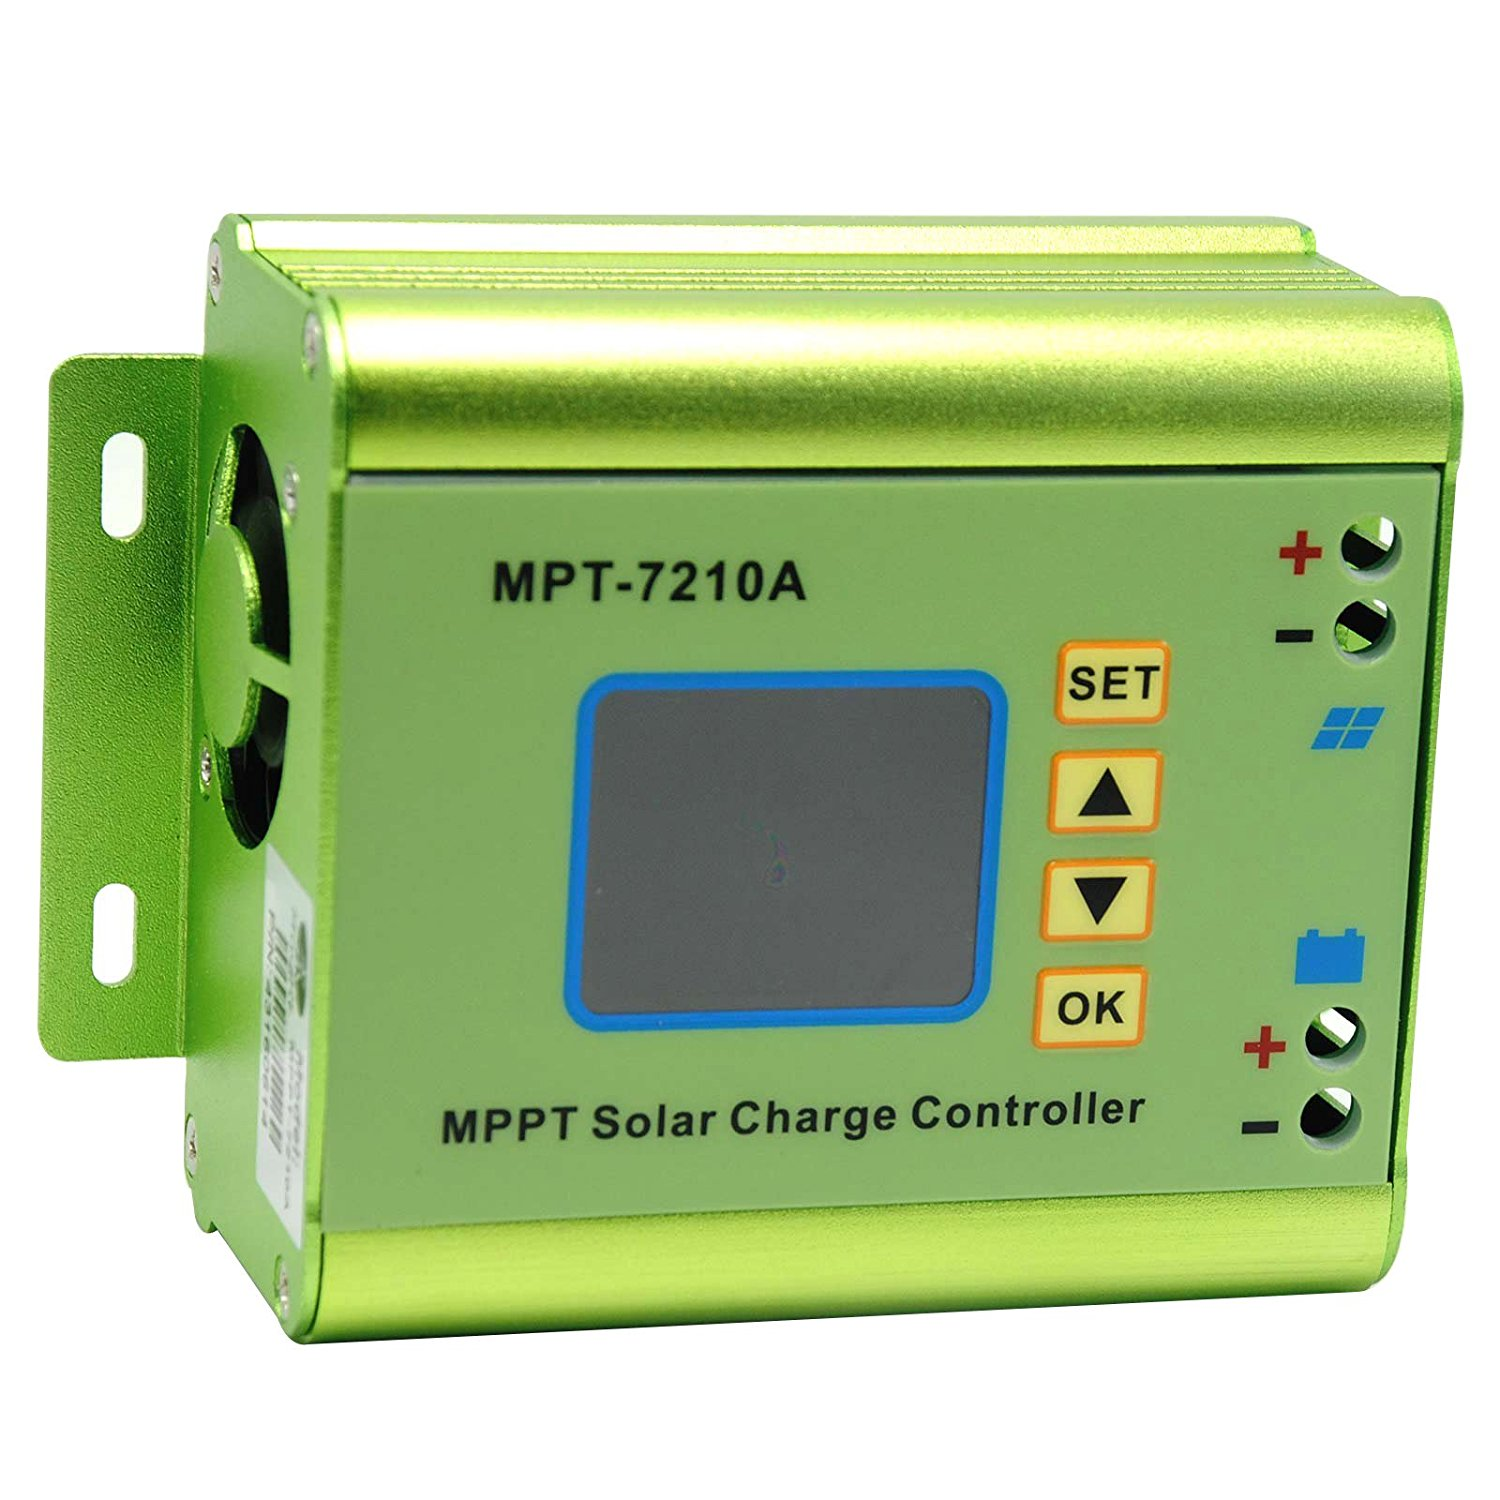 NYBG MPPT Solar Panel Battery Regulator Charge Controller for Streetlights/Household Charging System 10A